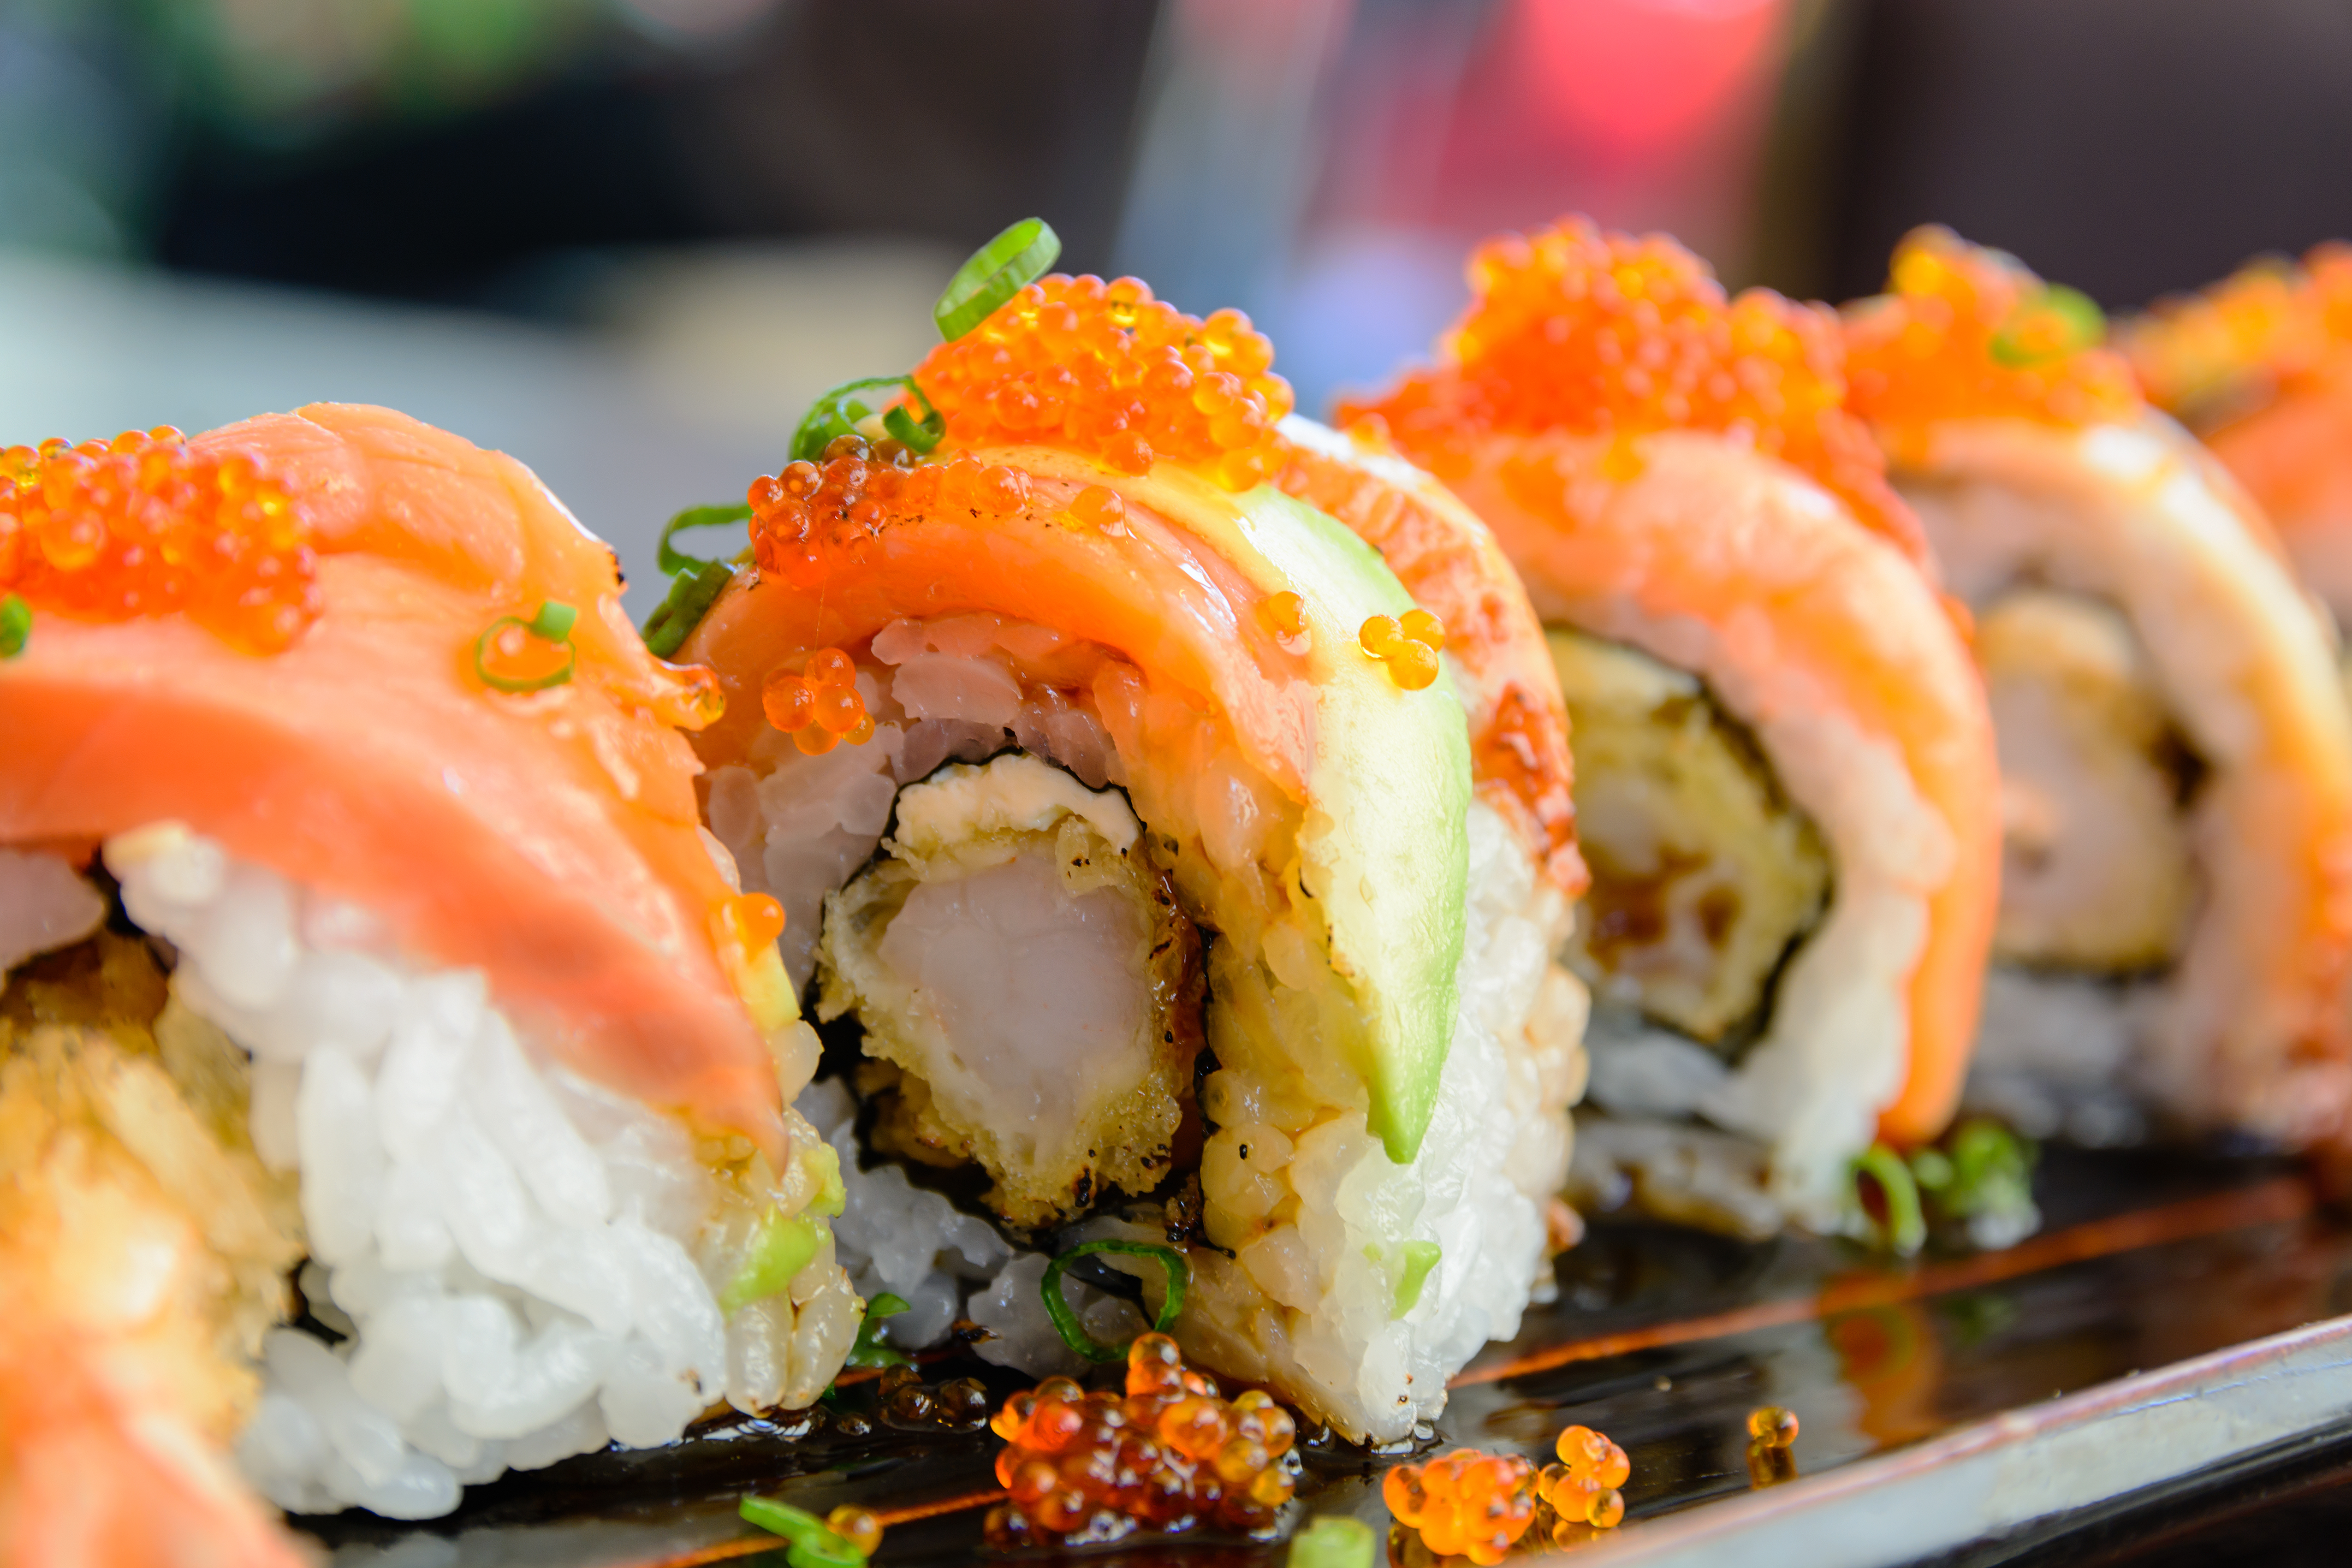 Sushi rolls filled with shrimp tempura and covered with strips of salmon.